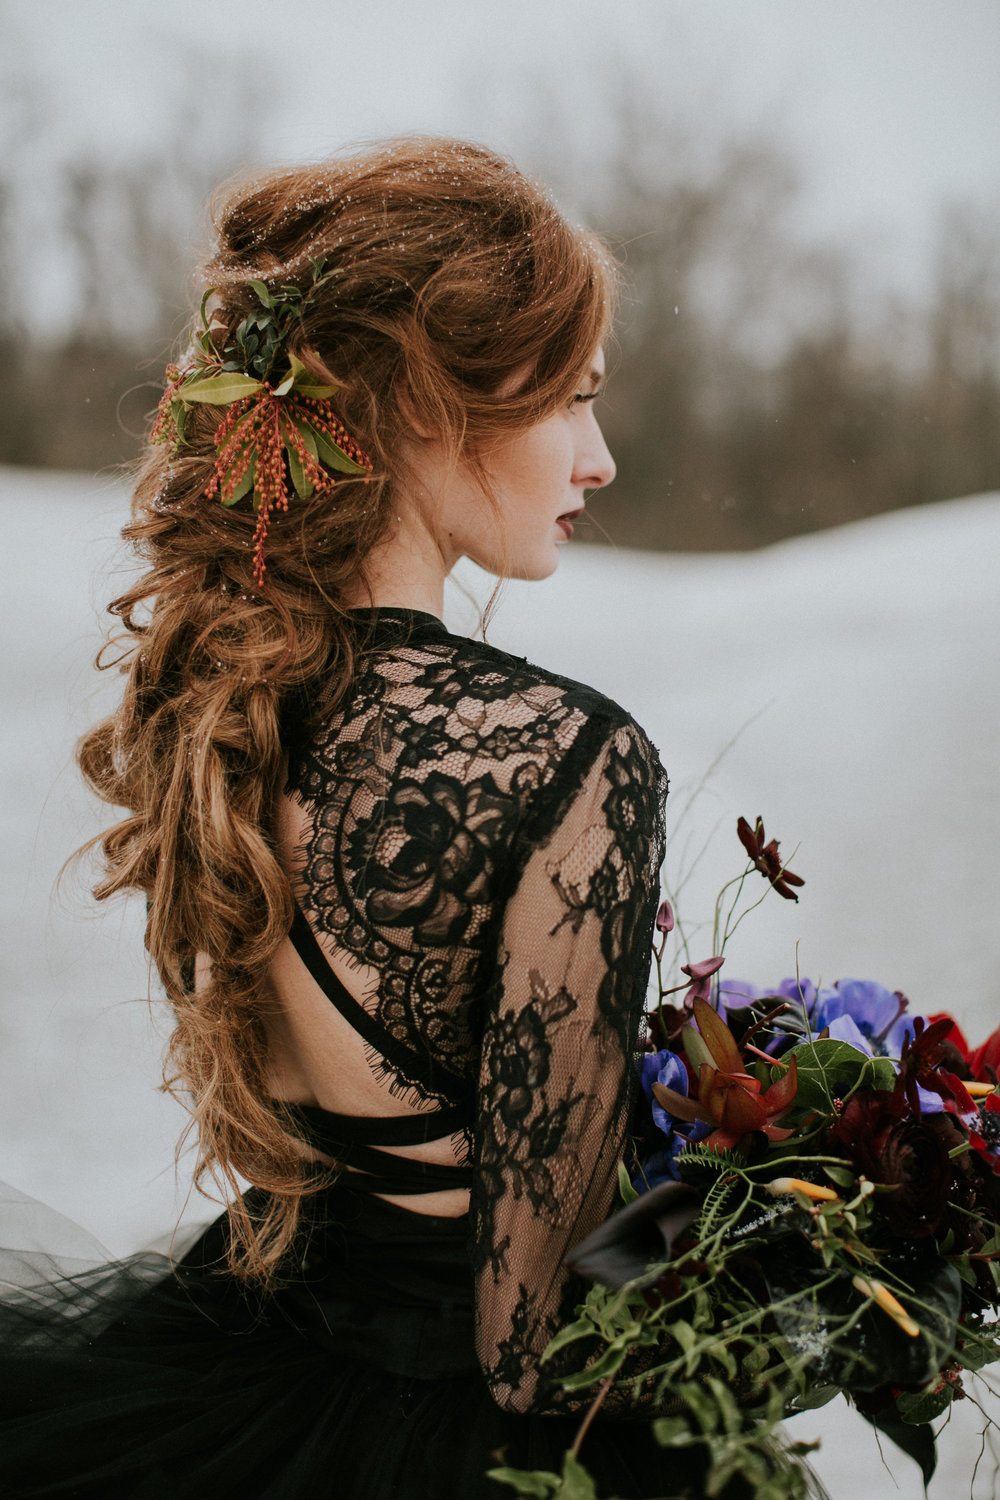 Flying Fox's Llyr and Serpens Rings  in Moonstone and Sterling, shot by  Sarah Brookhart  Photography, model is  Danielle Lehman , bodysuit and skirt by  Sweet Caroline Styles , makeup and hair by  The Bonafide Ginger , florals by  Splints and Daisies .